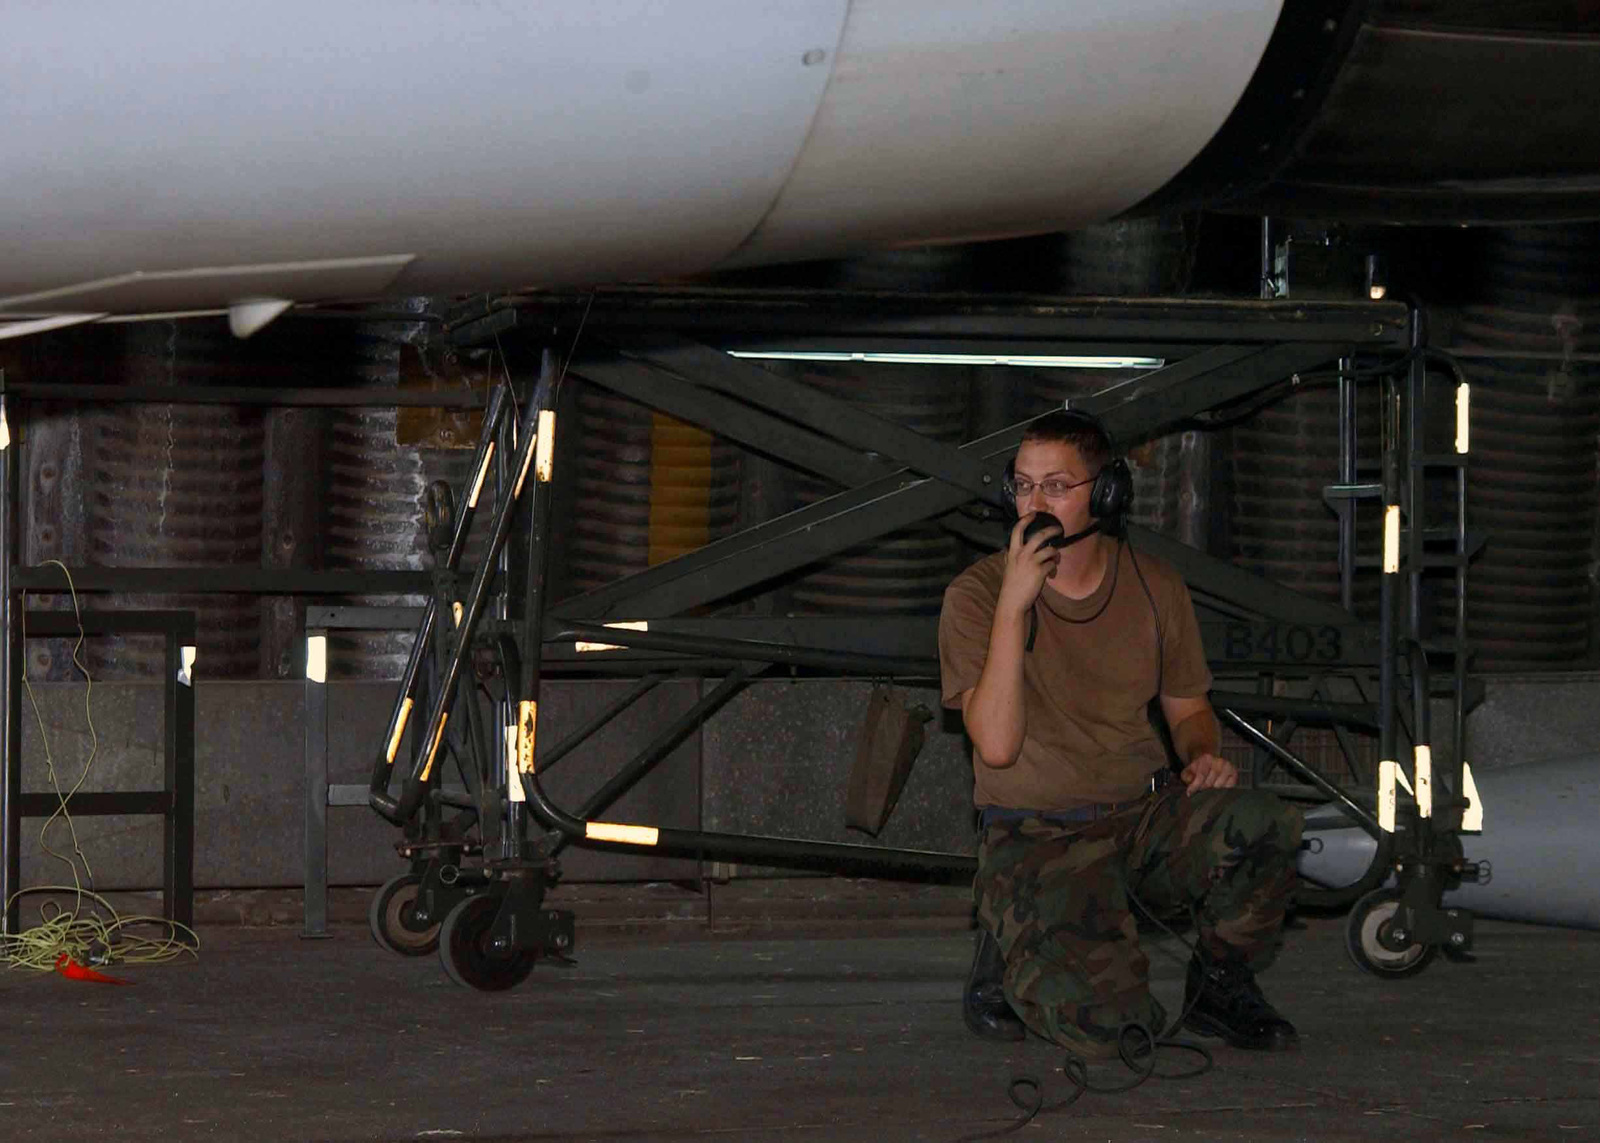 US Air Force (USAF) SENIOR AIRMAN (SRA) Bradley Taylor, 78th Expeditionary Fighter Squadron (EFS) talks into the communication system, as he conducts aircraft maintenance at Incirlik Air Base (AB), Turkey, while deployed in support of Combined Task Force (CTF), Operation NORTHERN WATCH